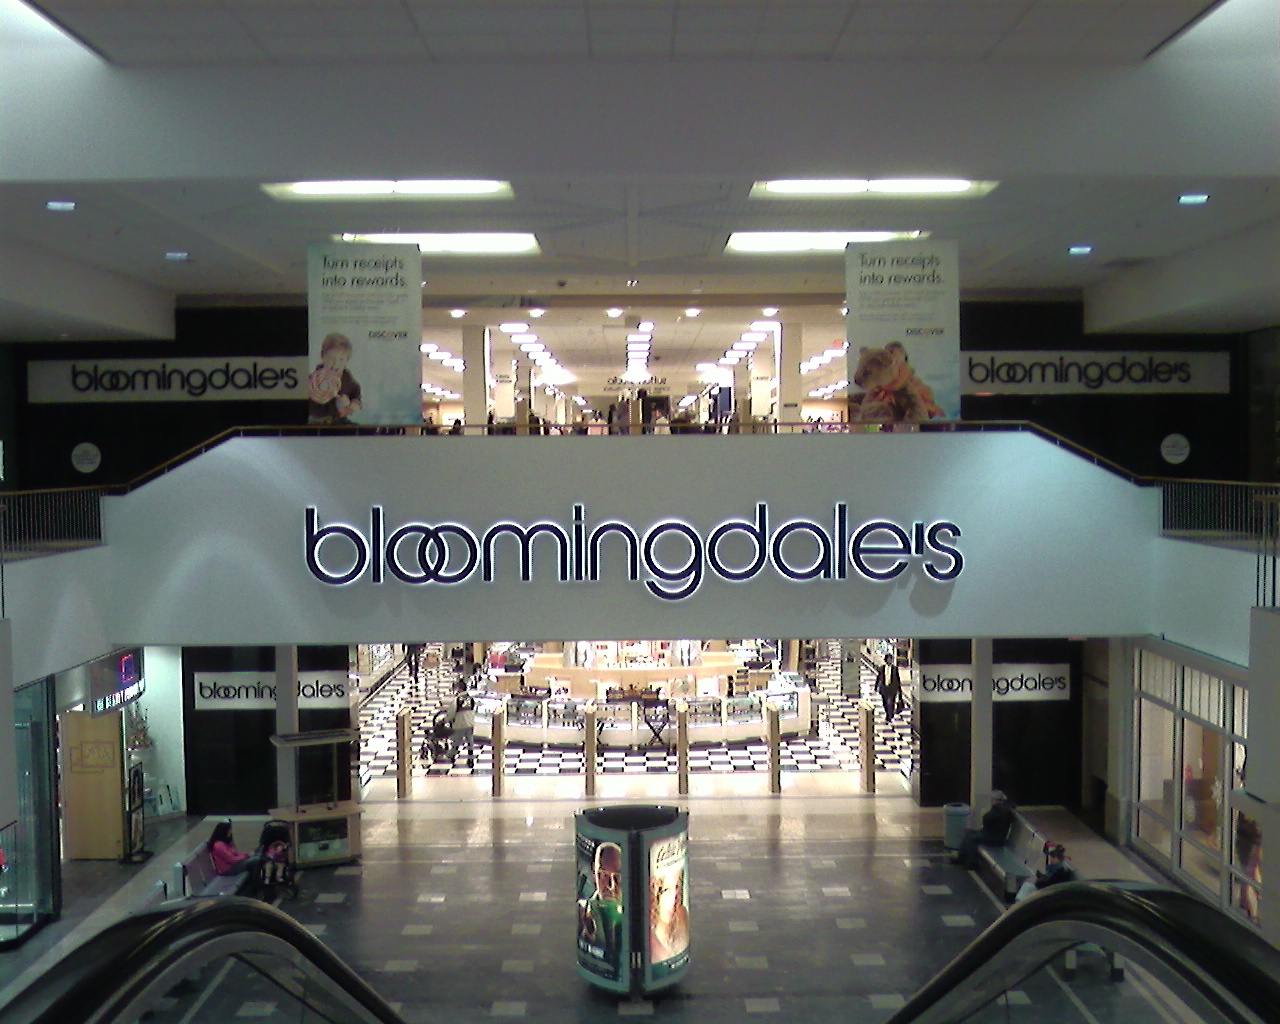 Bloomingdale's at Willowbrook Mall in Wayne, New Jersey